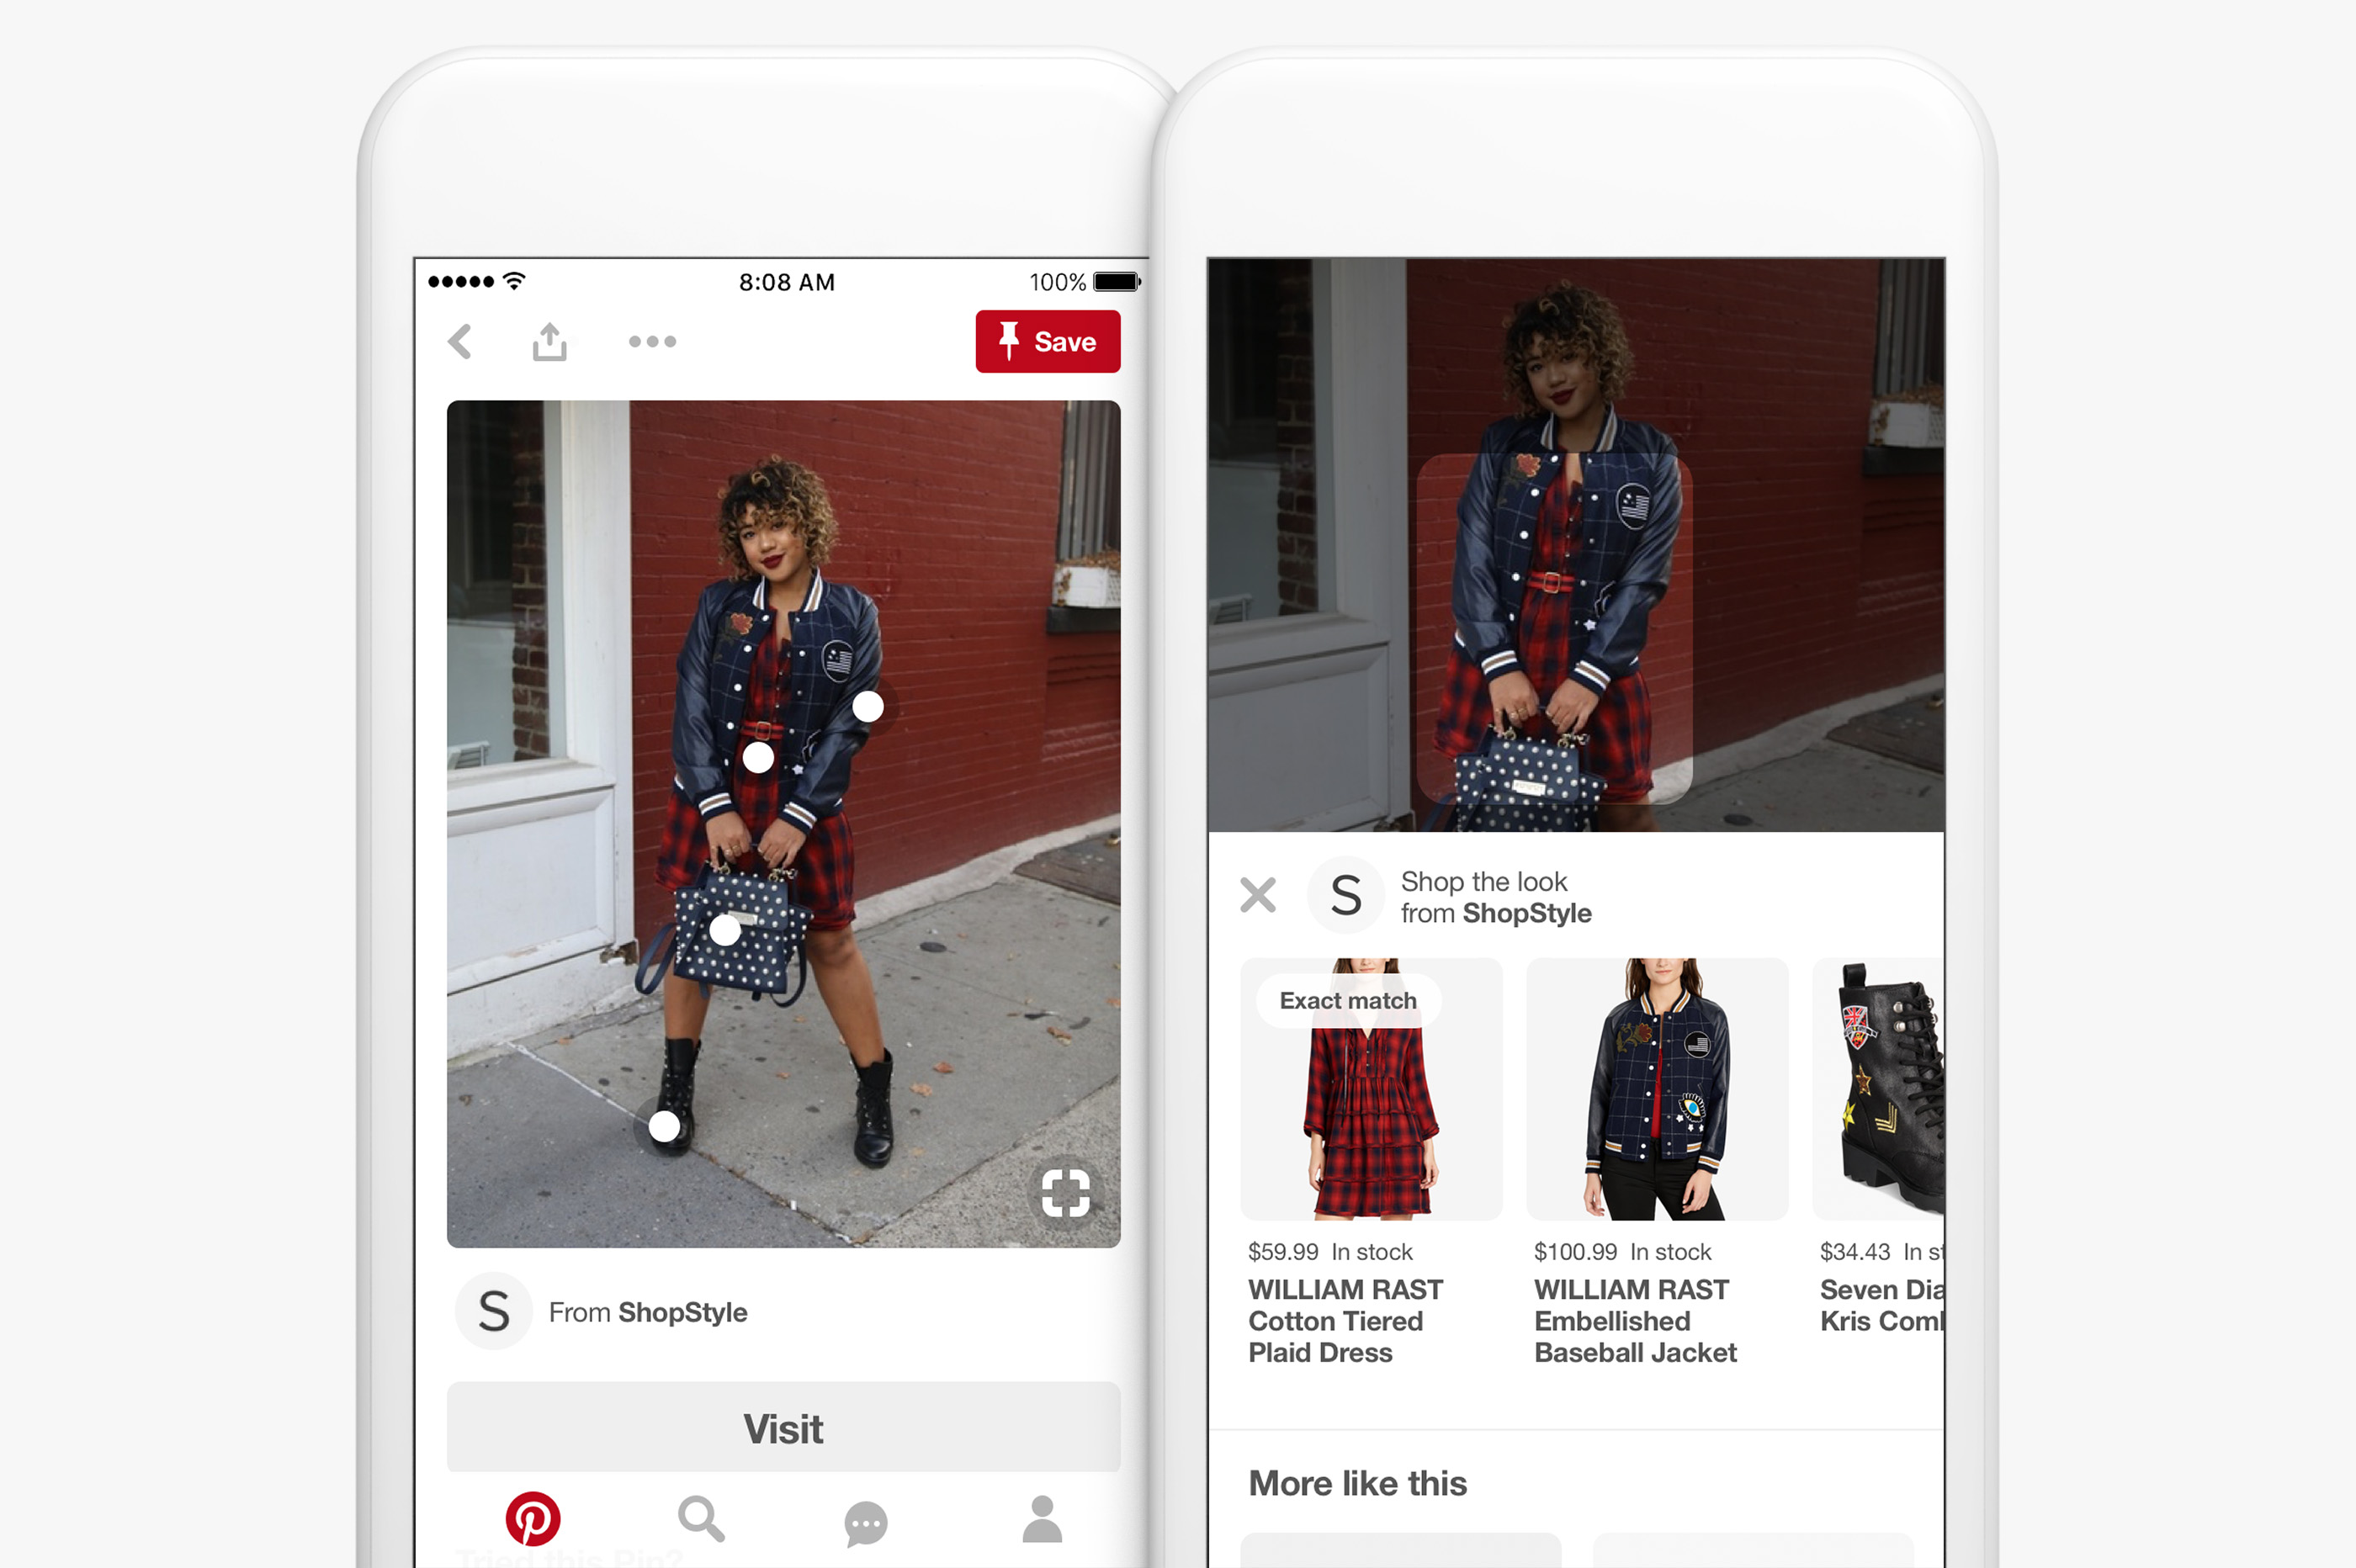 Pinterest Adds New Discovery Options, Including 'Lens Your Look' and 'Pincodes' | Social Media Today